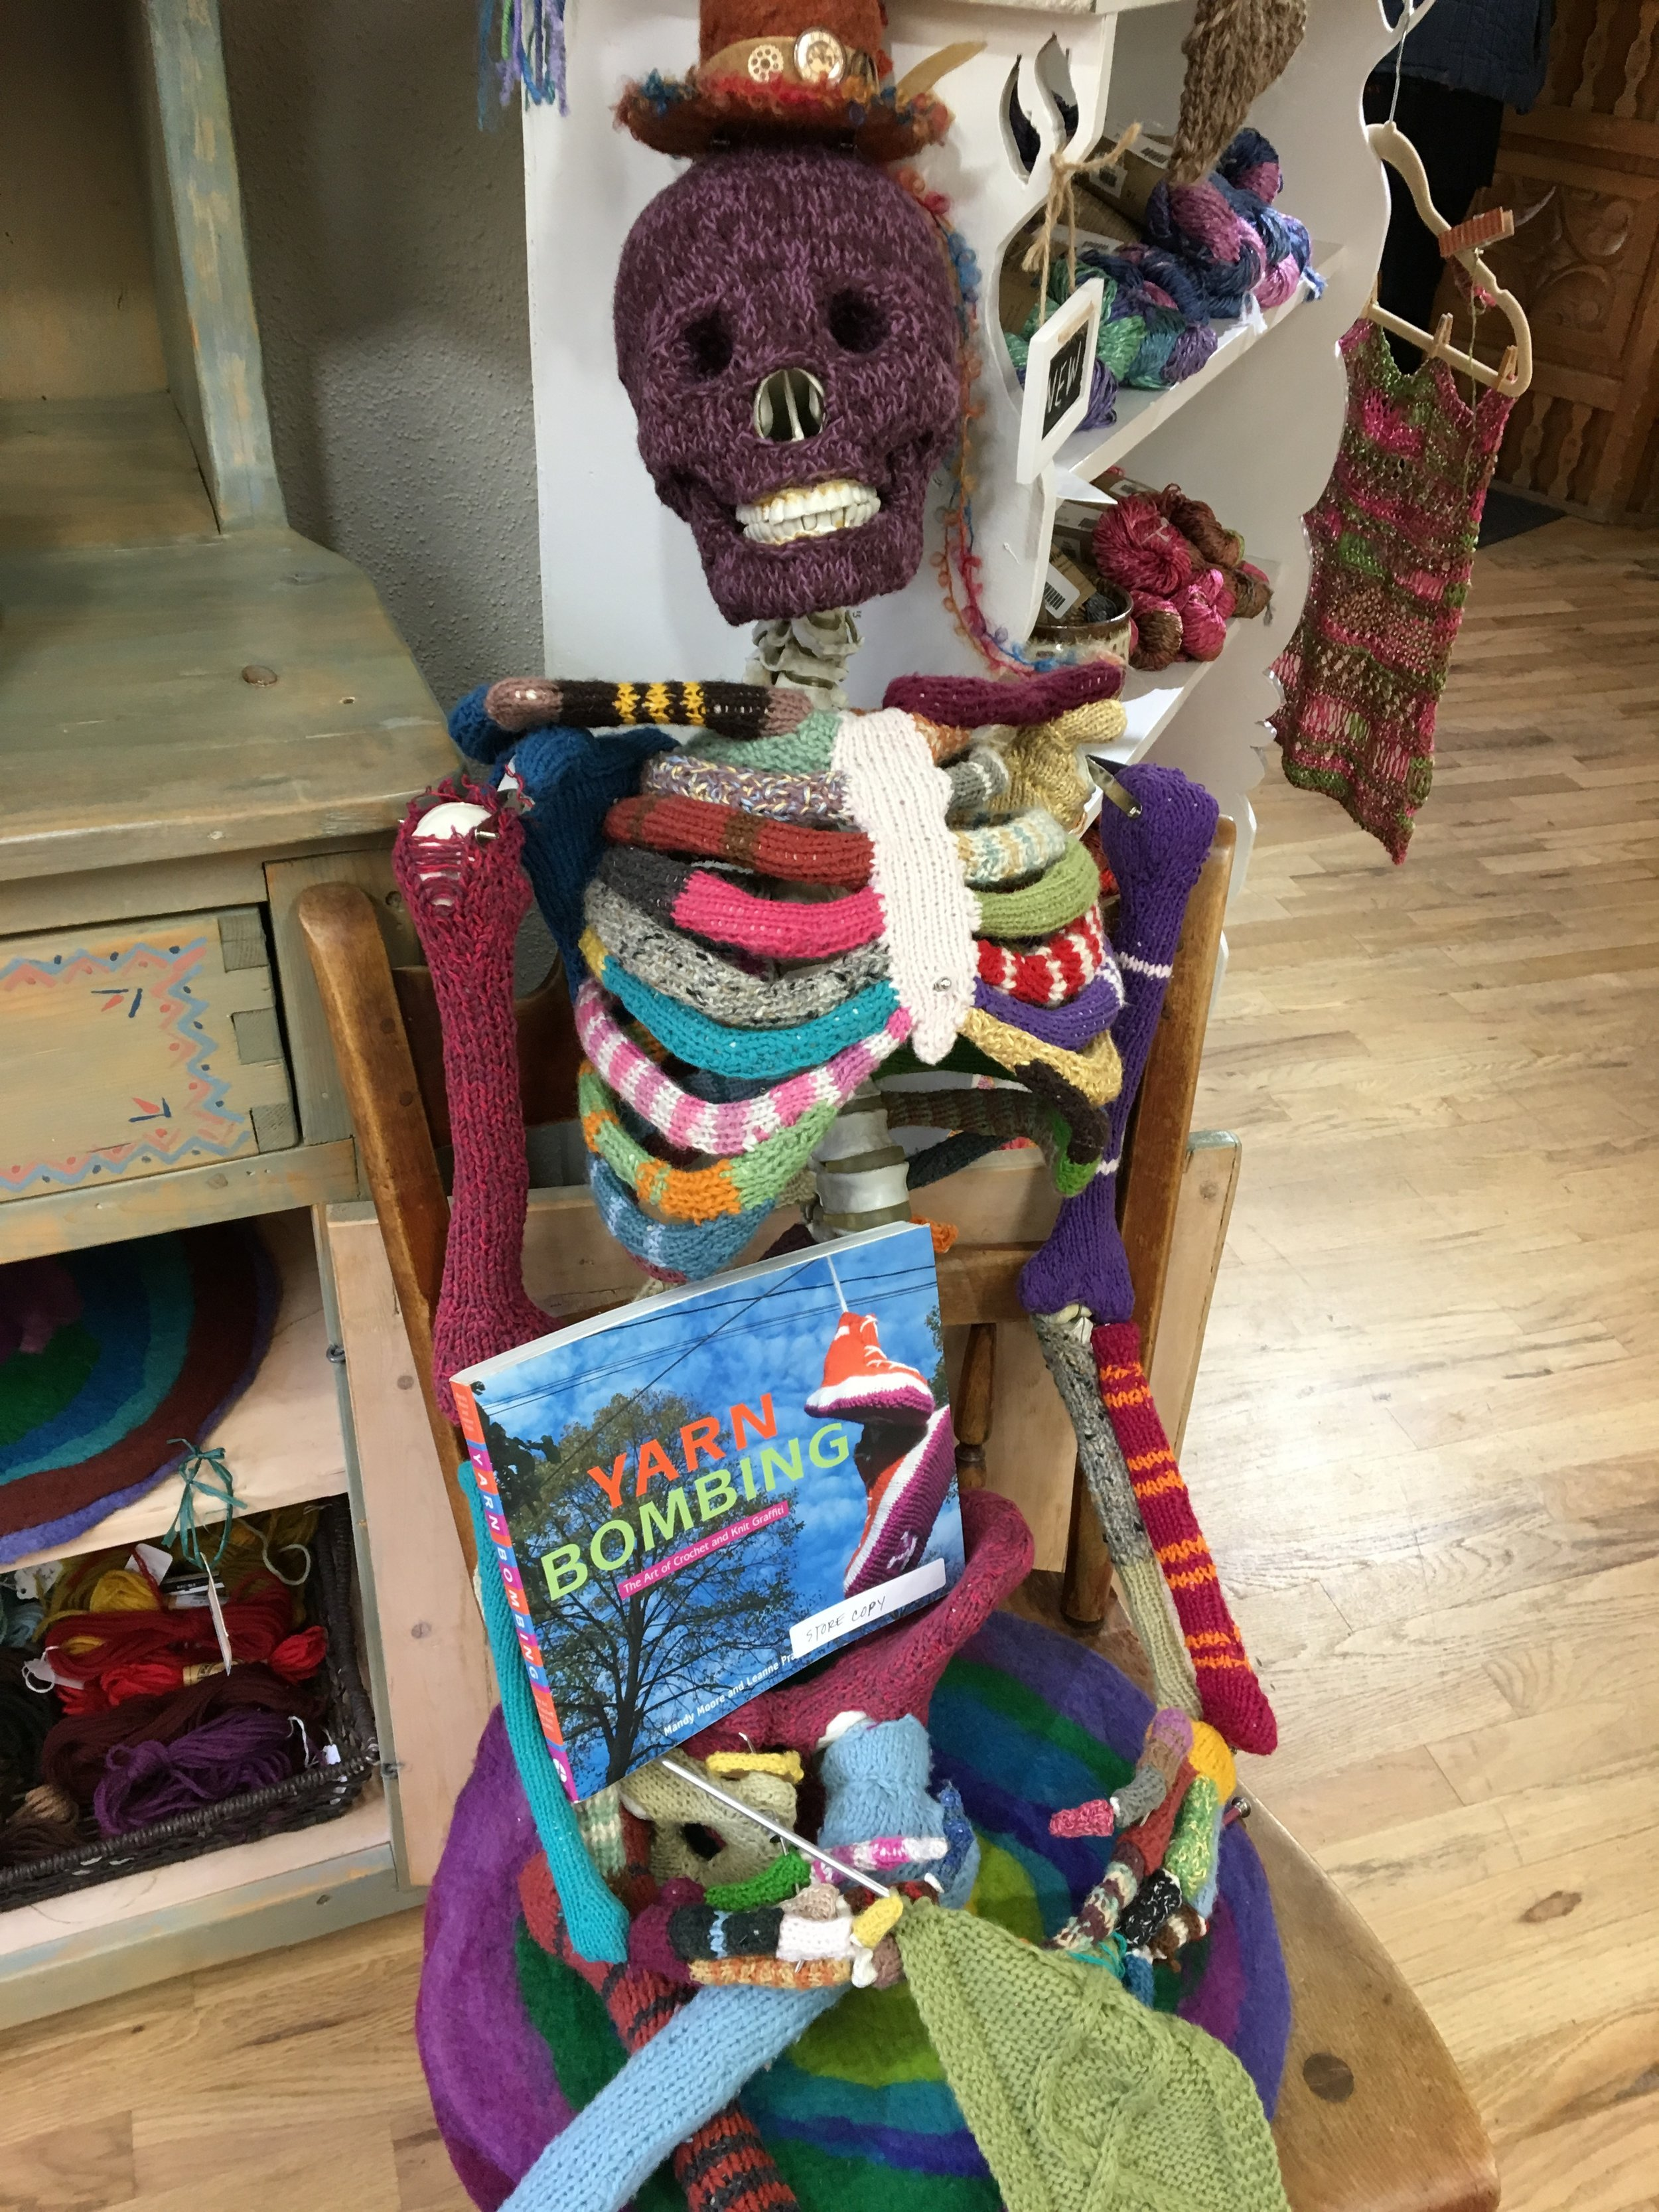 A yarn bombed friend at Vortex Yarns